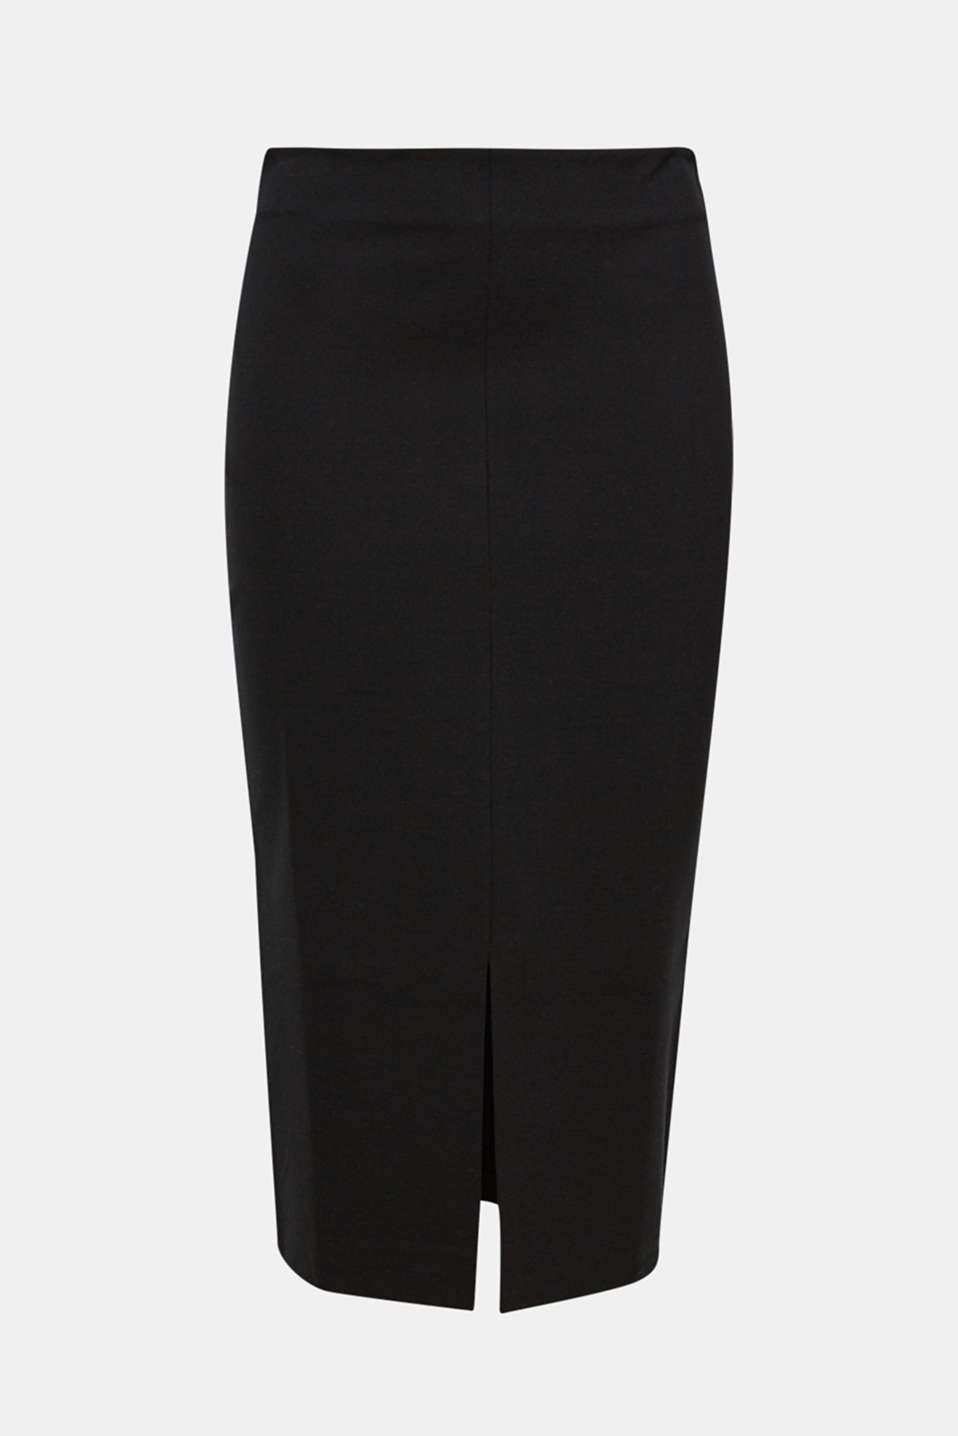 This midi skirt in firm stretch jersey creates a beautifully slinky, feminine silhouette with a slit at the centre front!